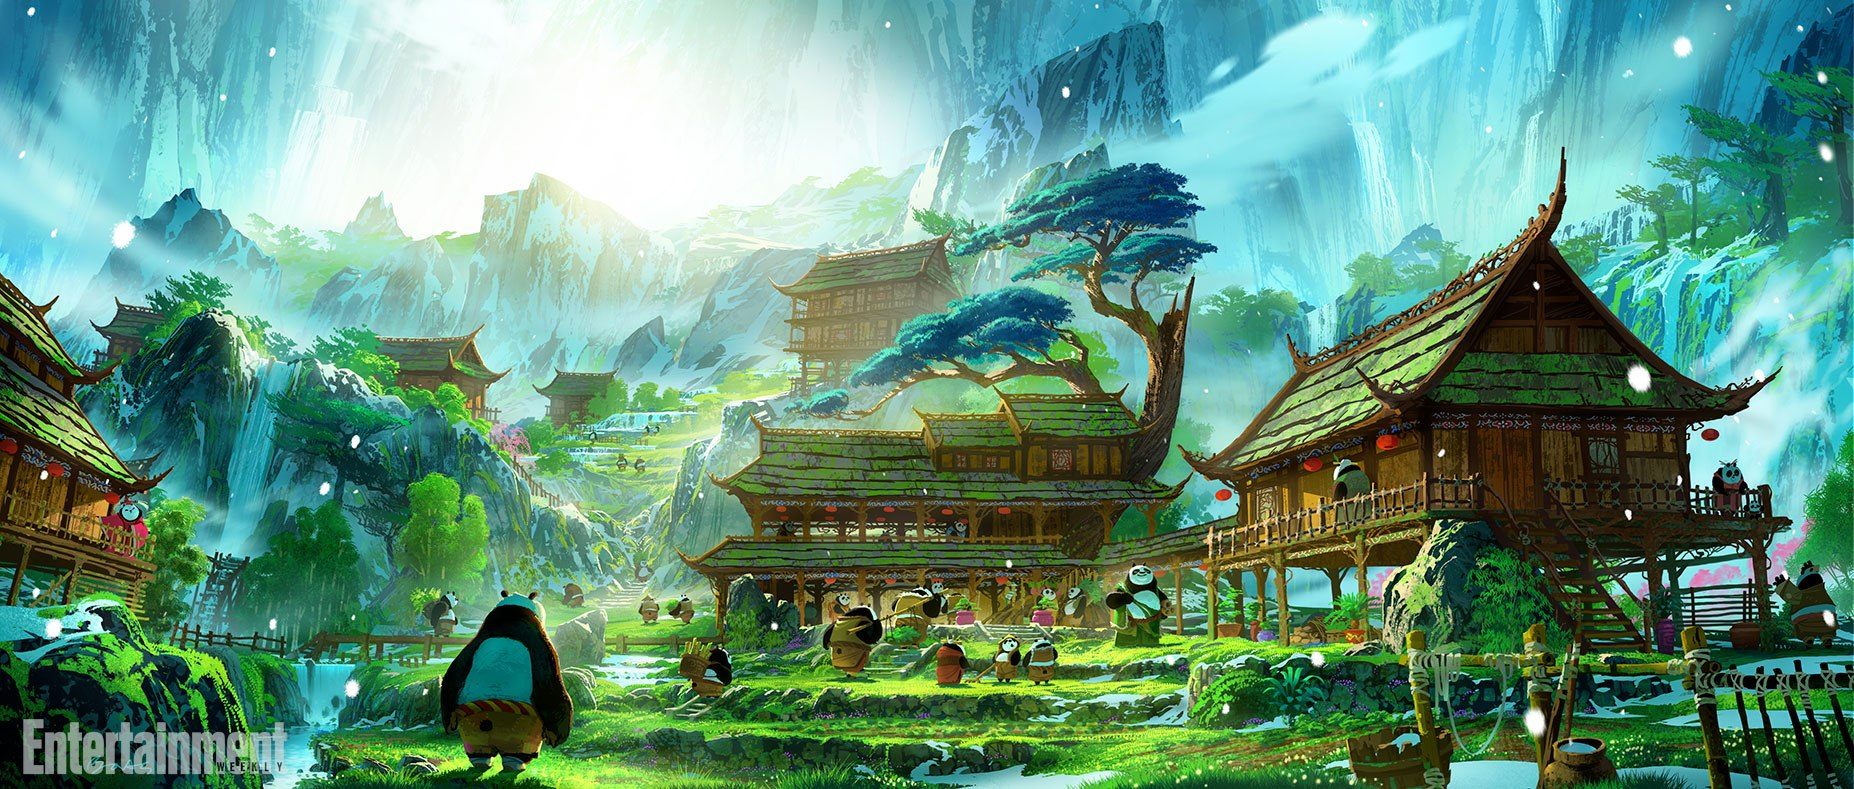 Look dreamworks animation releases kung fu panda 3 for Wallpaper home animation